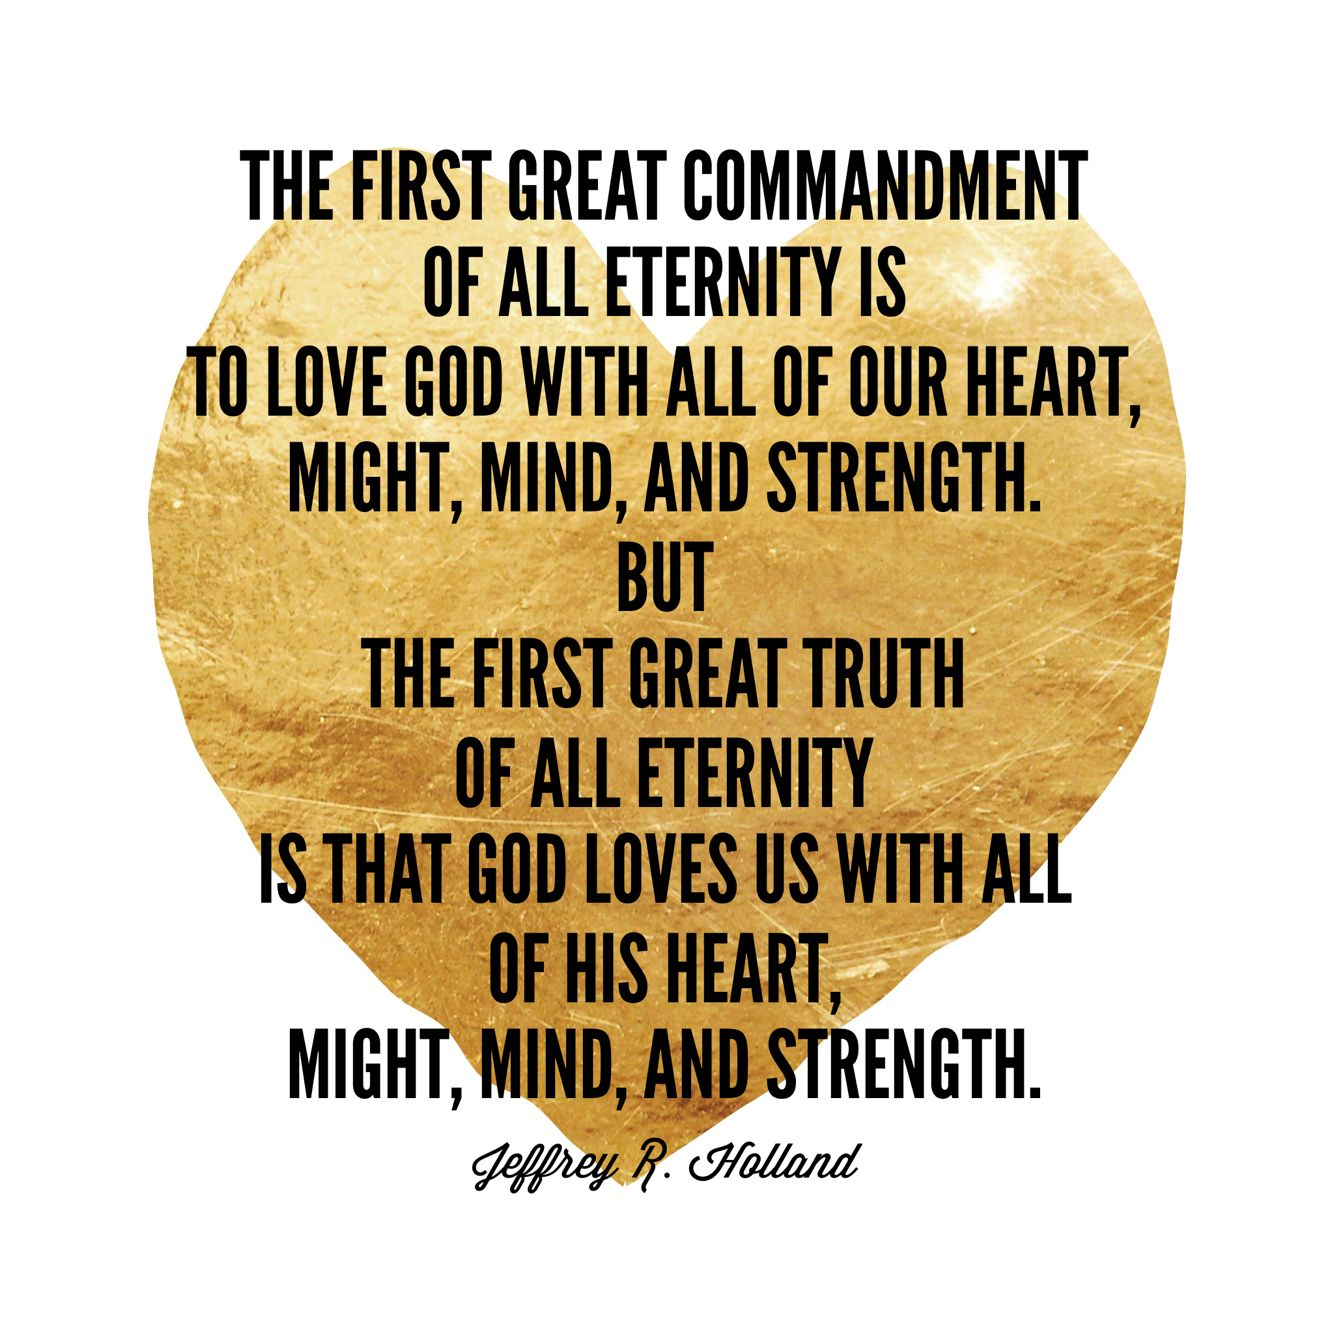 Quotes About God And Love The First Great Commandment Of All Eternity Is To Love God With